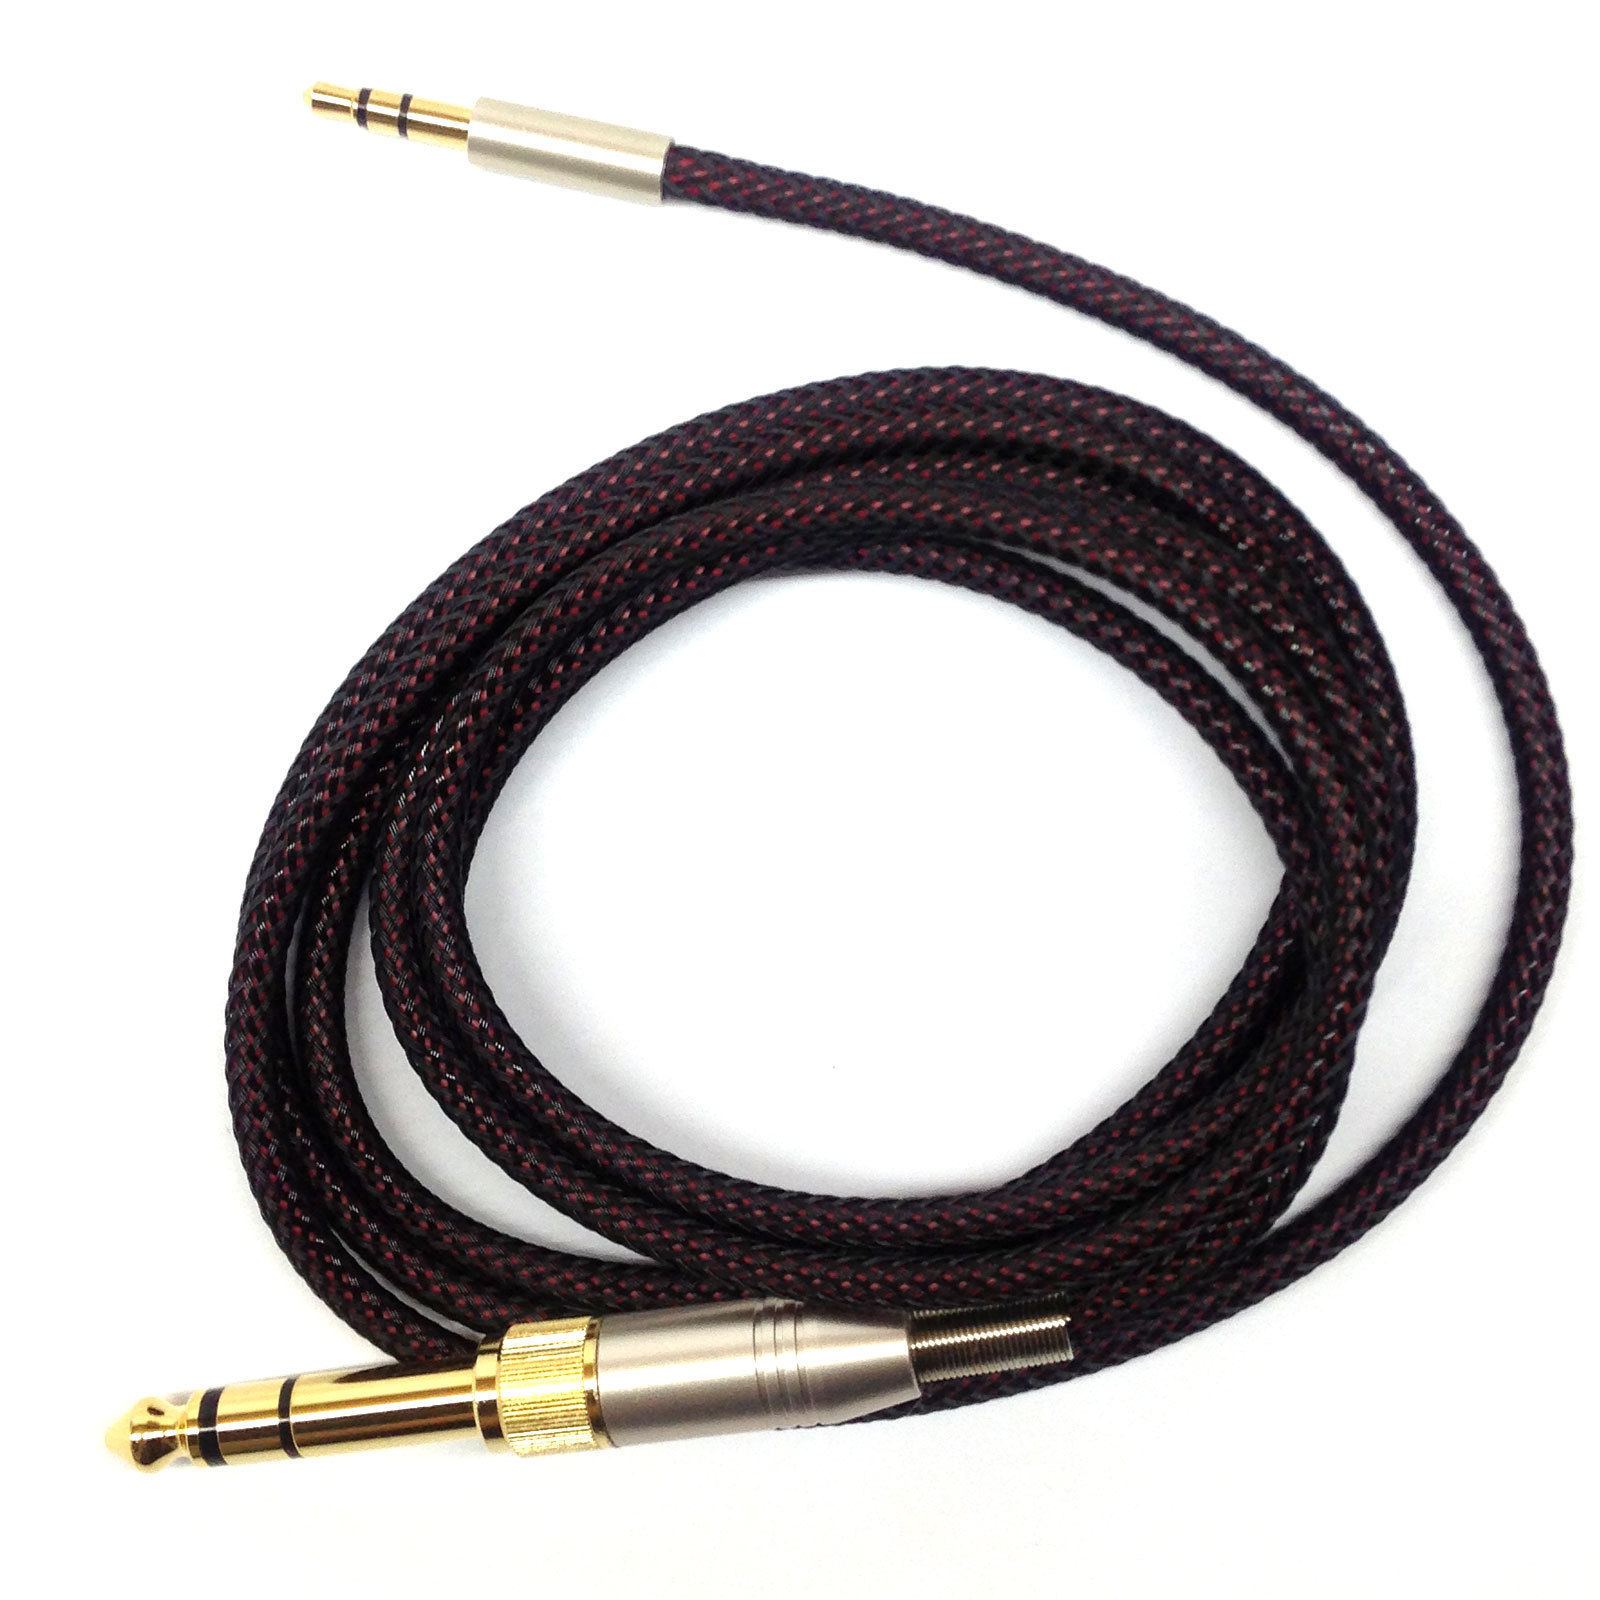 Replacement Upgrade Audio Cable For Denon And 50 Similar Items Headphone Ah Mm200 Mm400 Mm300